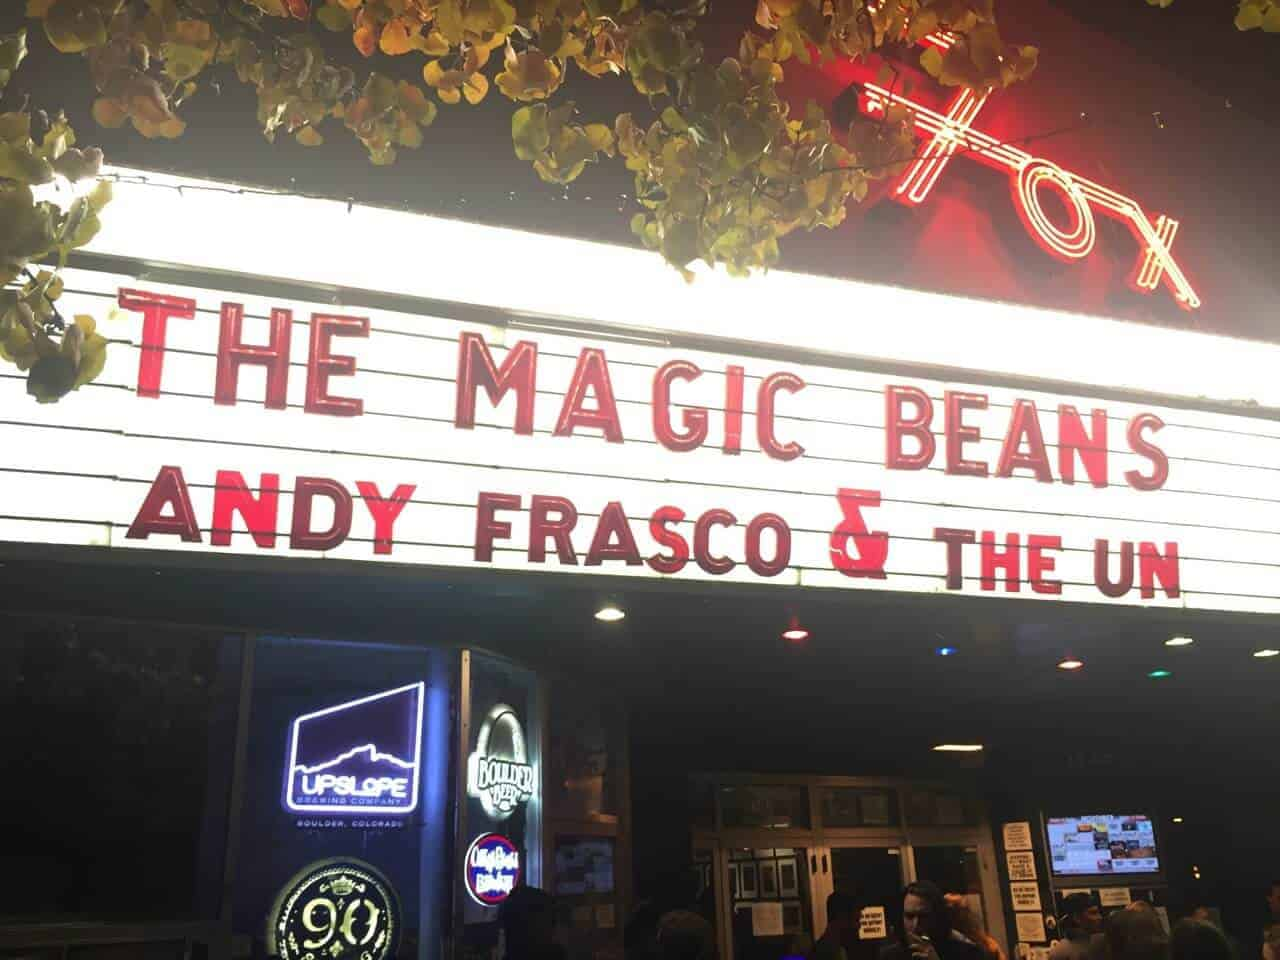 The Magic Beans and Andy Frasco and the U.N. at Fox Theatre, Boulder, Colorado - November 20th, 2015 1